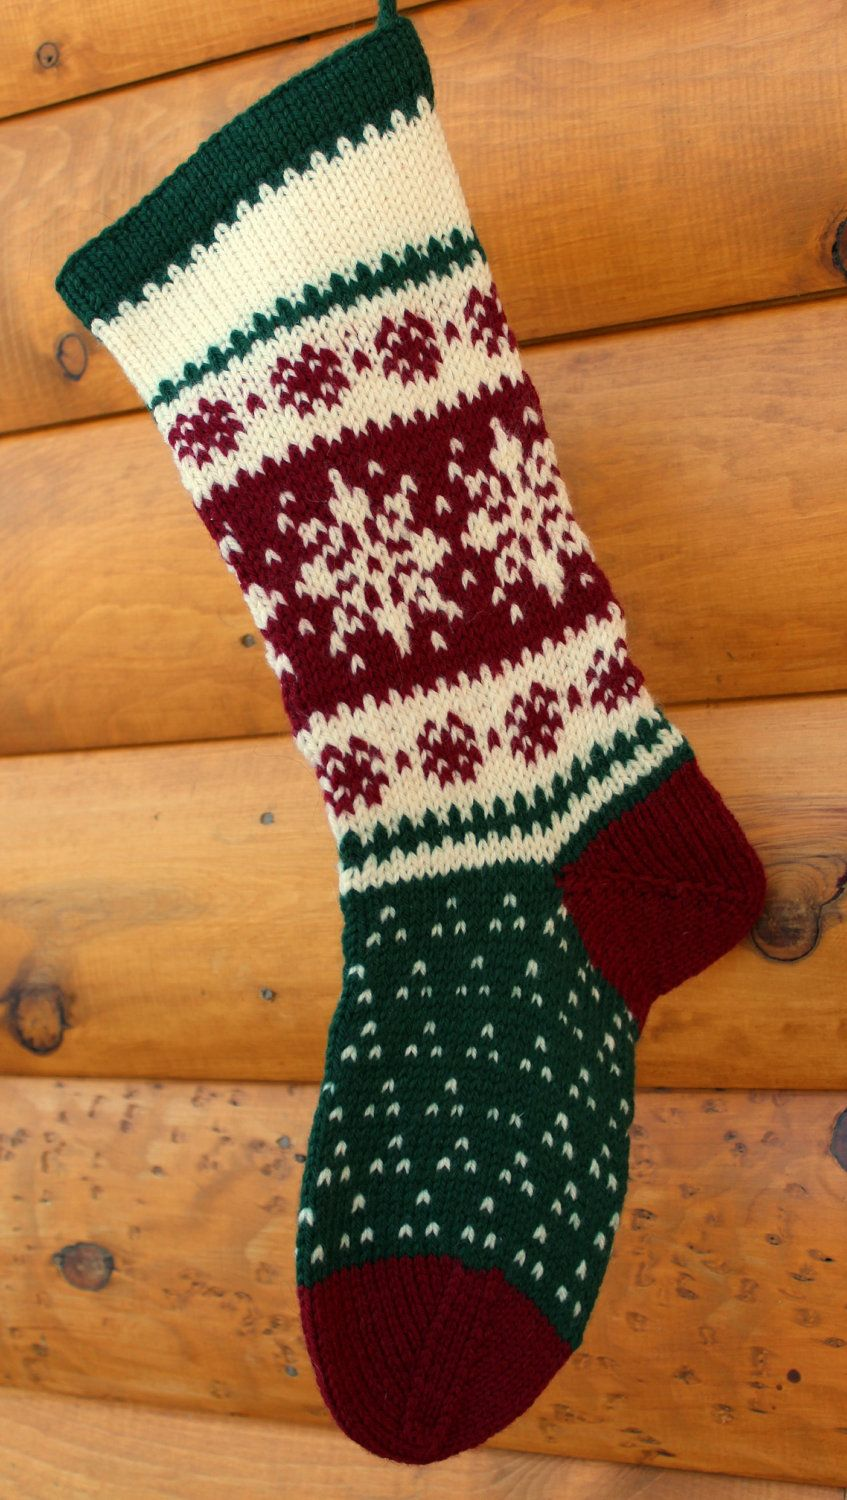 Pin By Liz Bechtel On Knitting Knitted Christmas